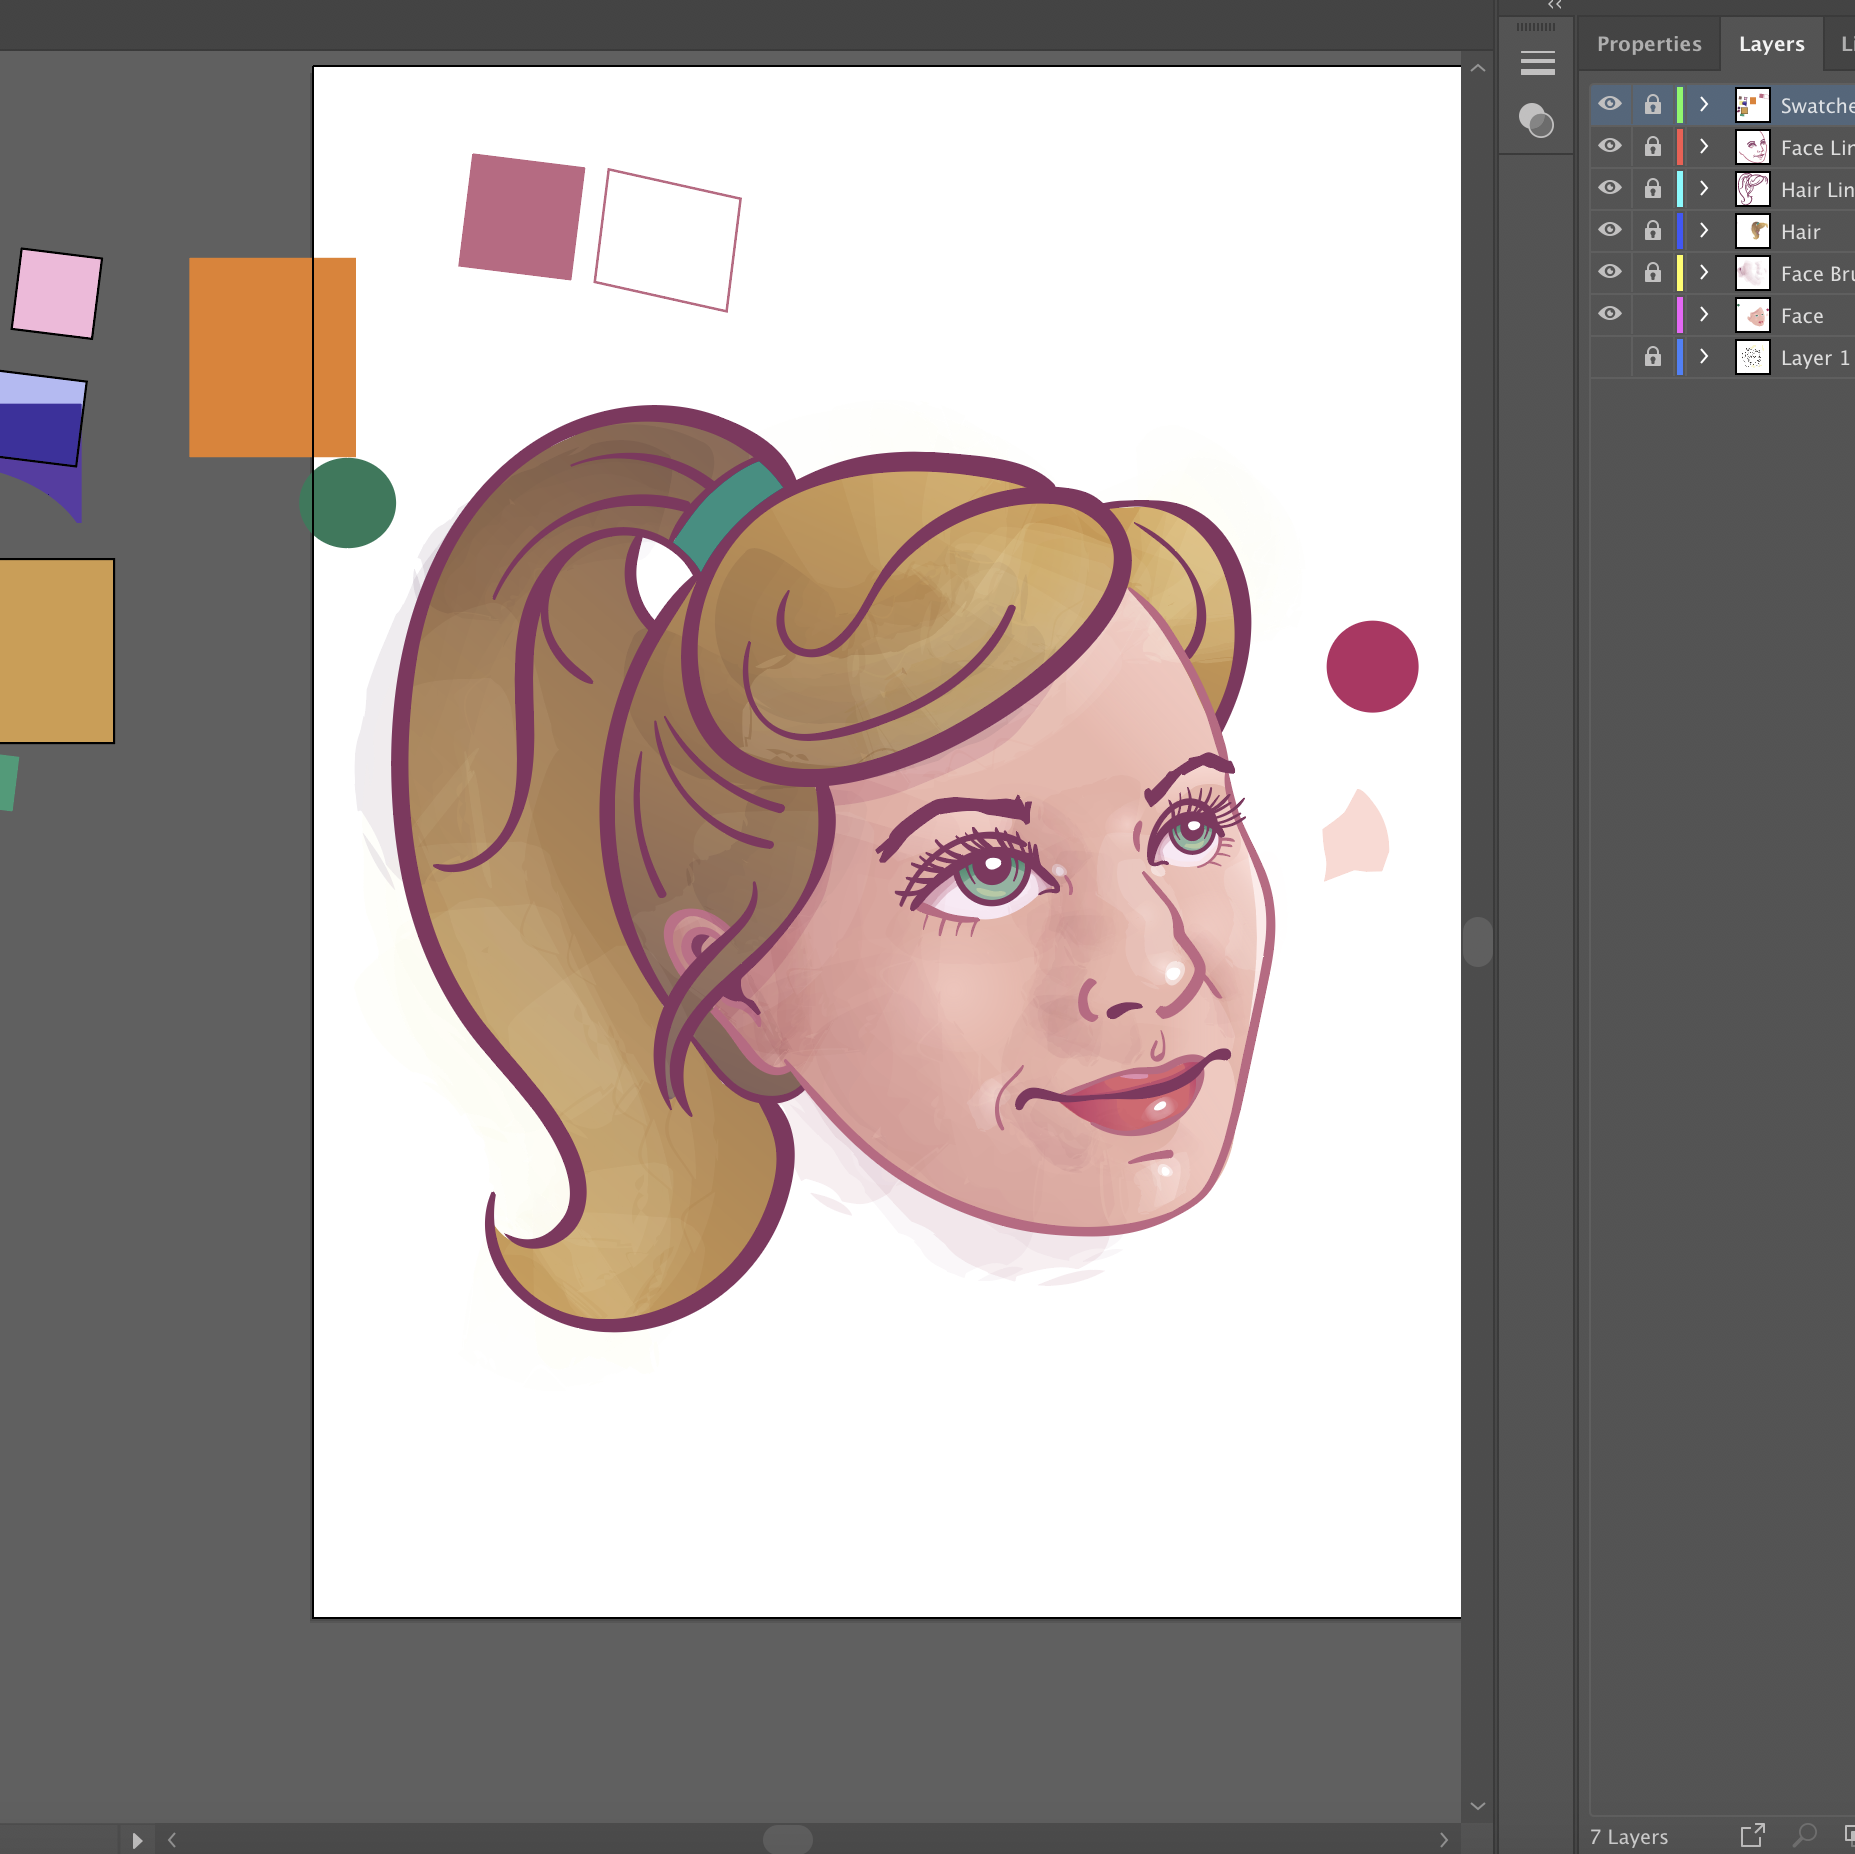 Illustrator File in Process - Here I've begun colorizing and building volume using gradients and watercolor washes. Look at those organized layers!